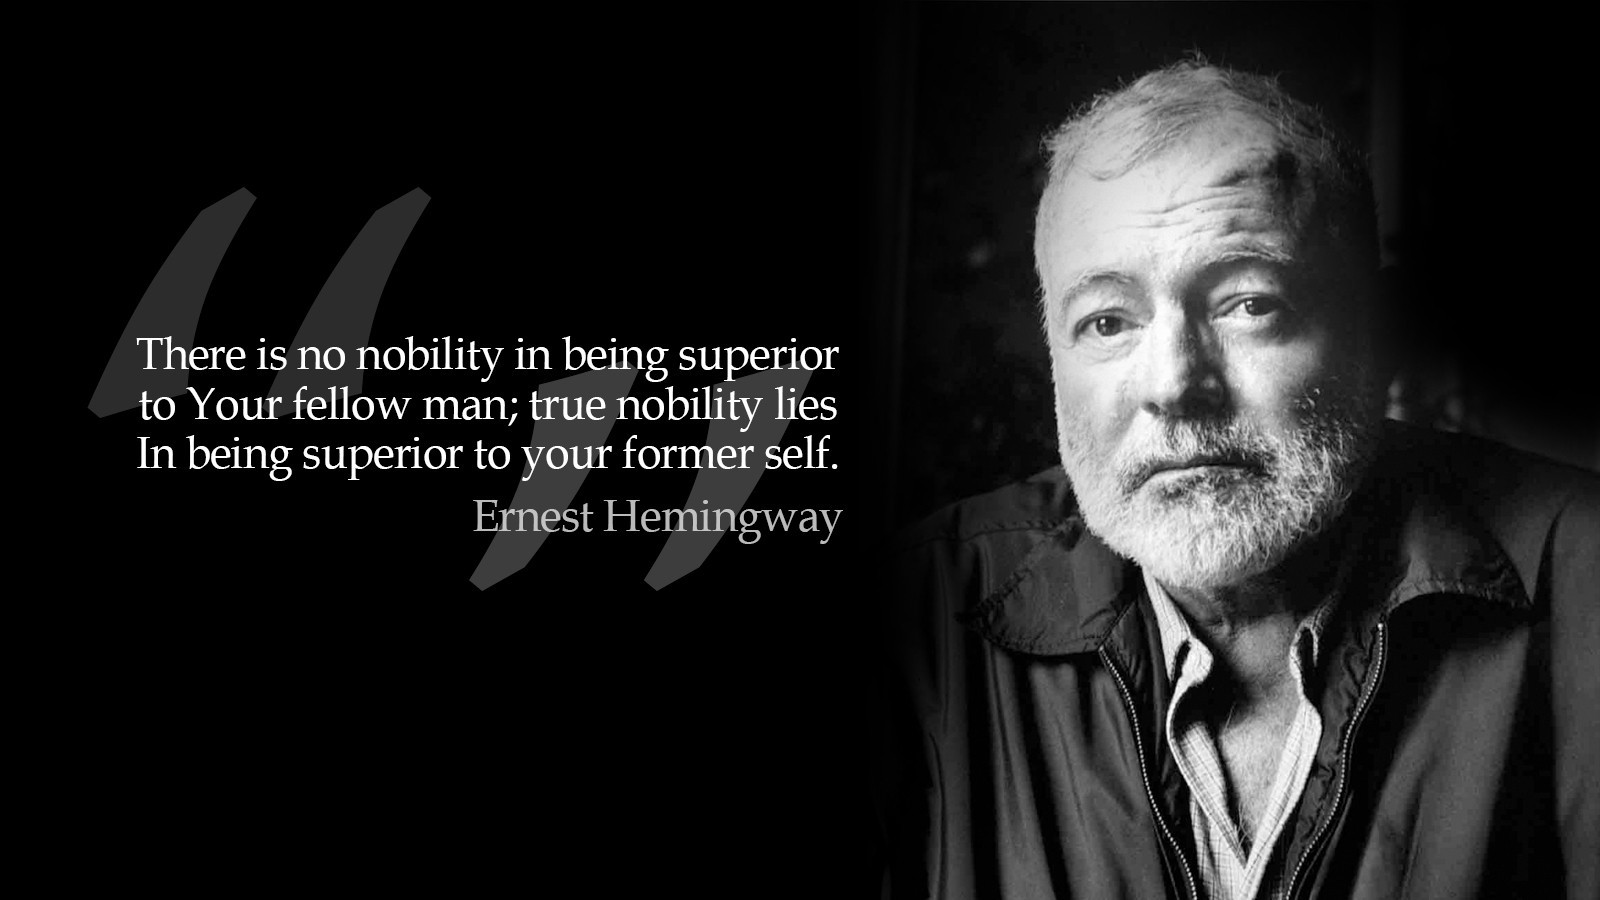 There is no nobility in being superior to your fellow man; true nobility lies in being superior to your former self.  – Ernest Hemingway